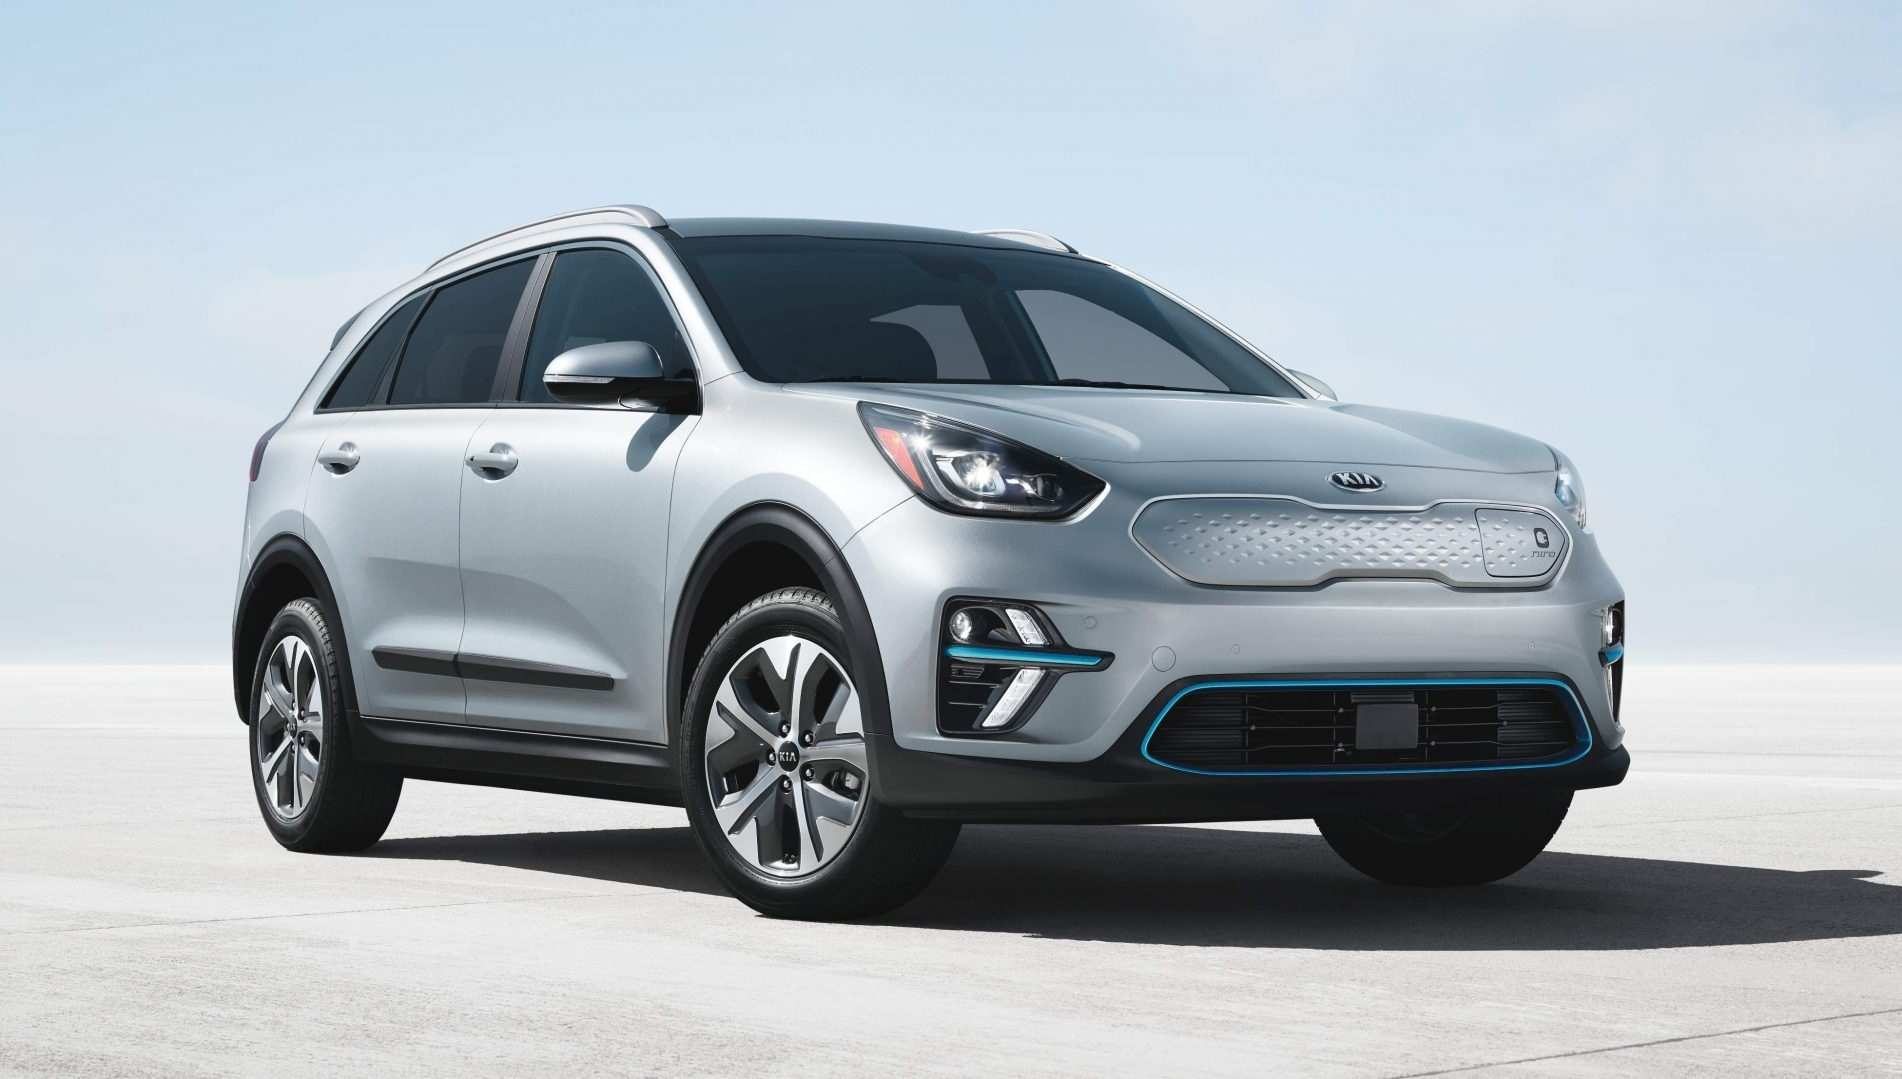 95 Gallery of Kia Niro 2020 Release Date Engine for Kia Niro 2020 Release Date